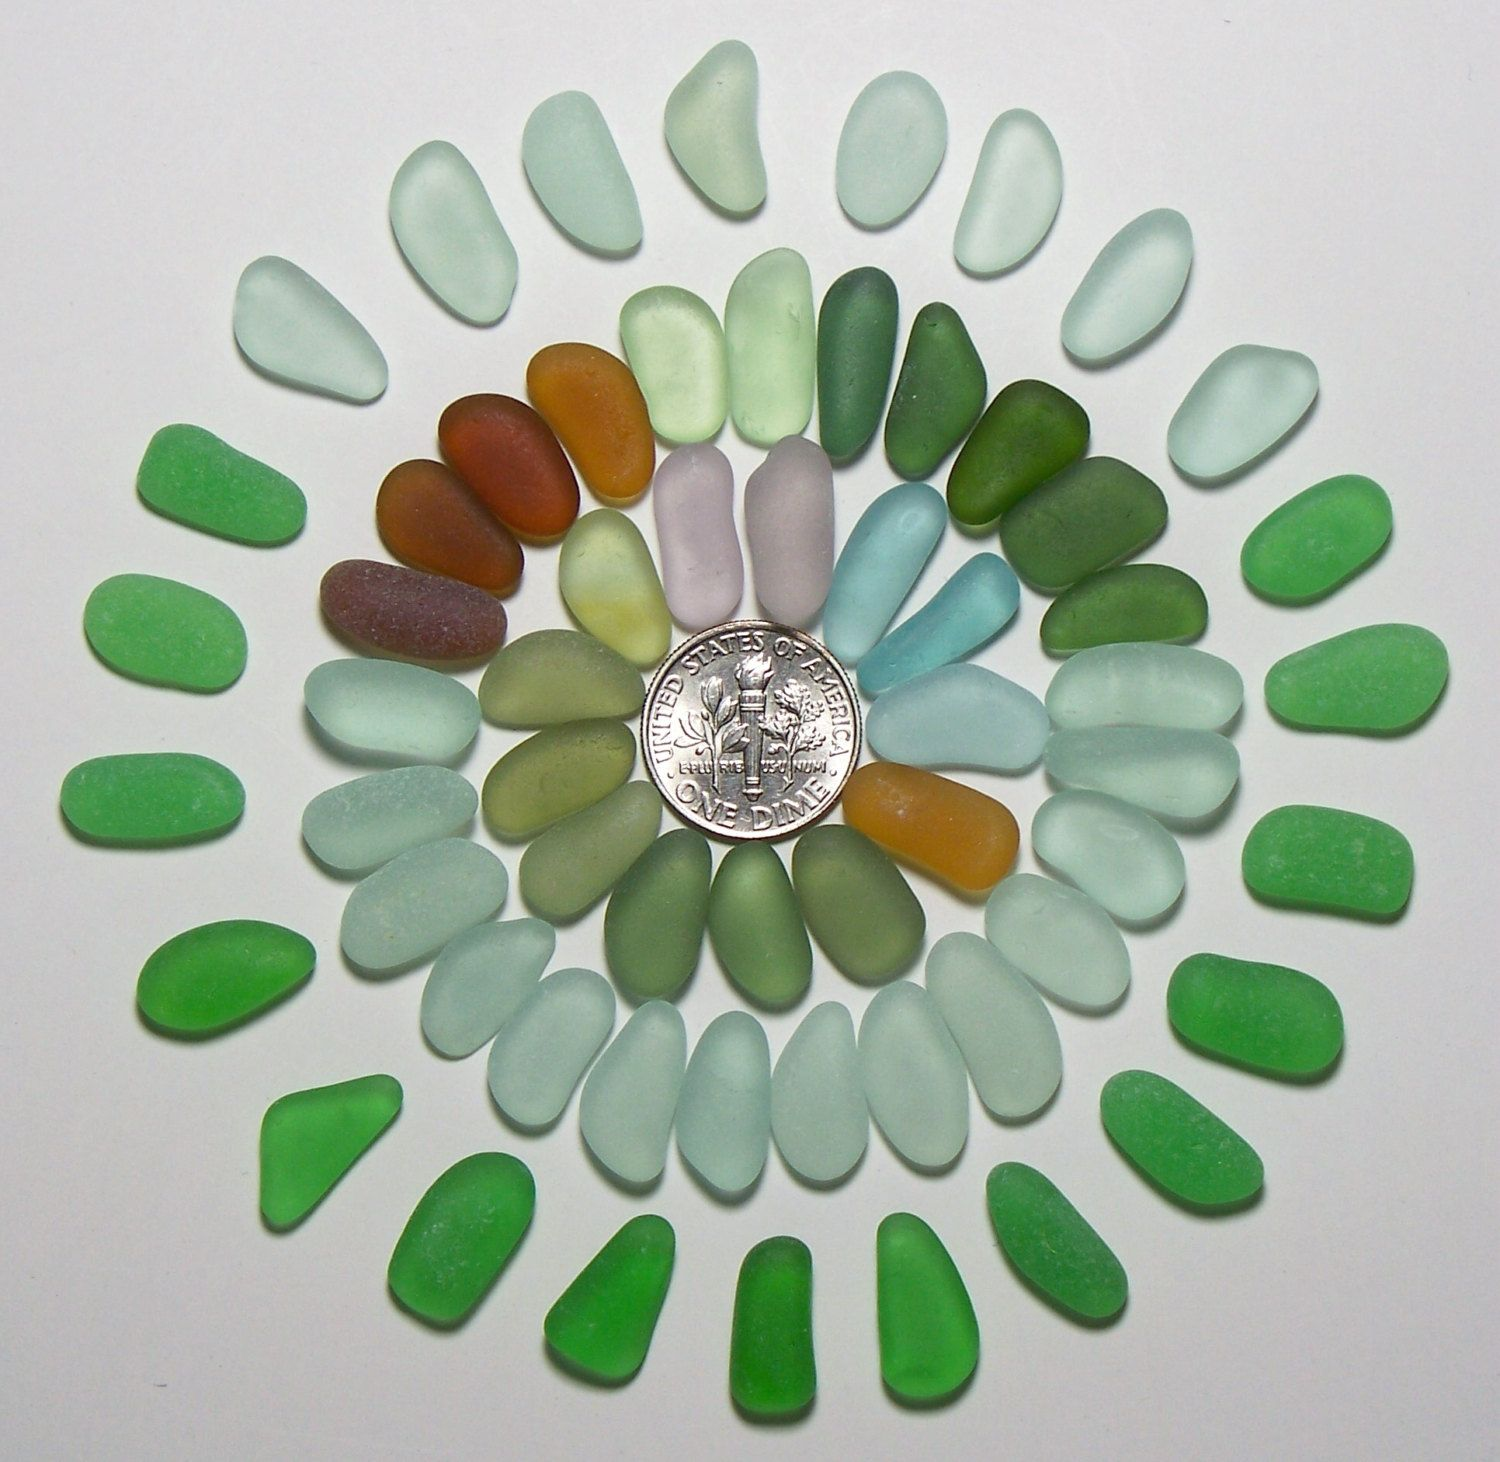 Tactile Tapers (55) Aqua Forest Green Amethyst etc Jewelry Quality Genuine Beach Sea Glass Lot from Ft Bragg(C10) - pinned by pin4etsy.com